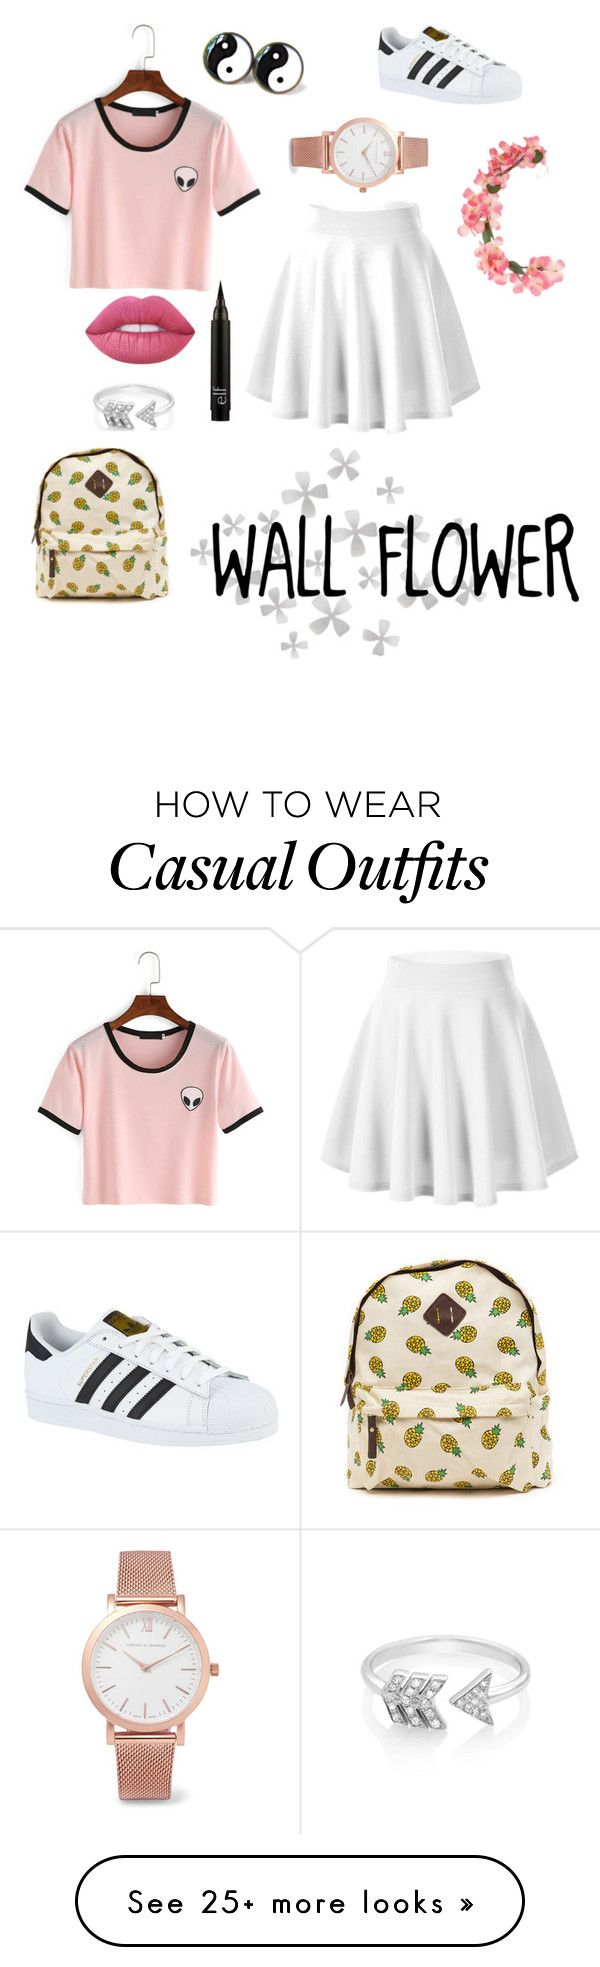 """""""Wall flower """" by blurryxfacexhood on Polyvore featuring Lime Crime, adidas, EF Collection, Larsson & Jennings, Miss Selfridge, Dot & Bo and summerbrights"""